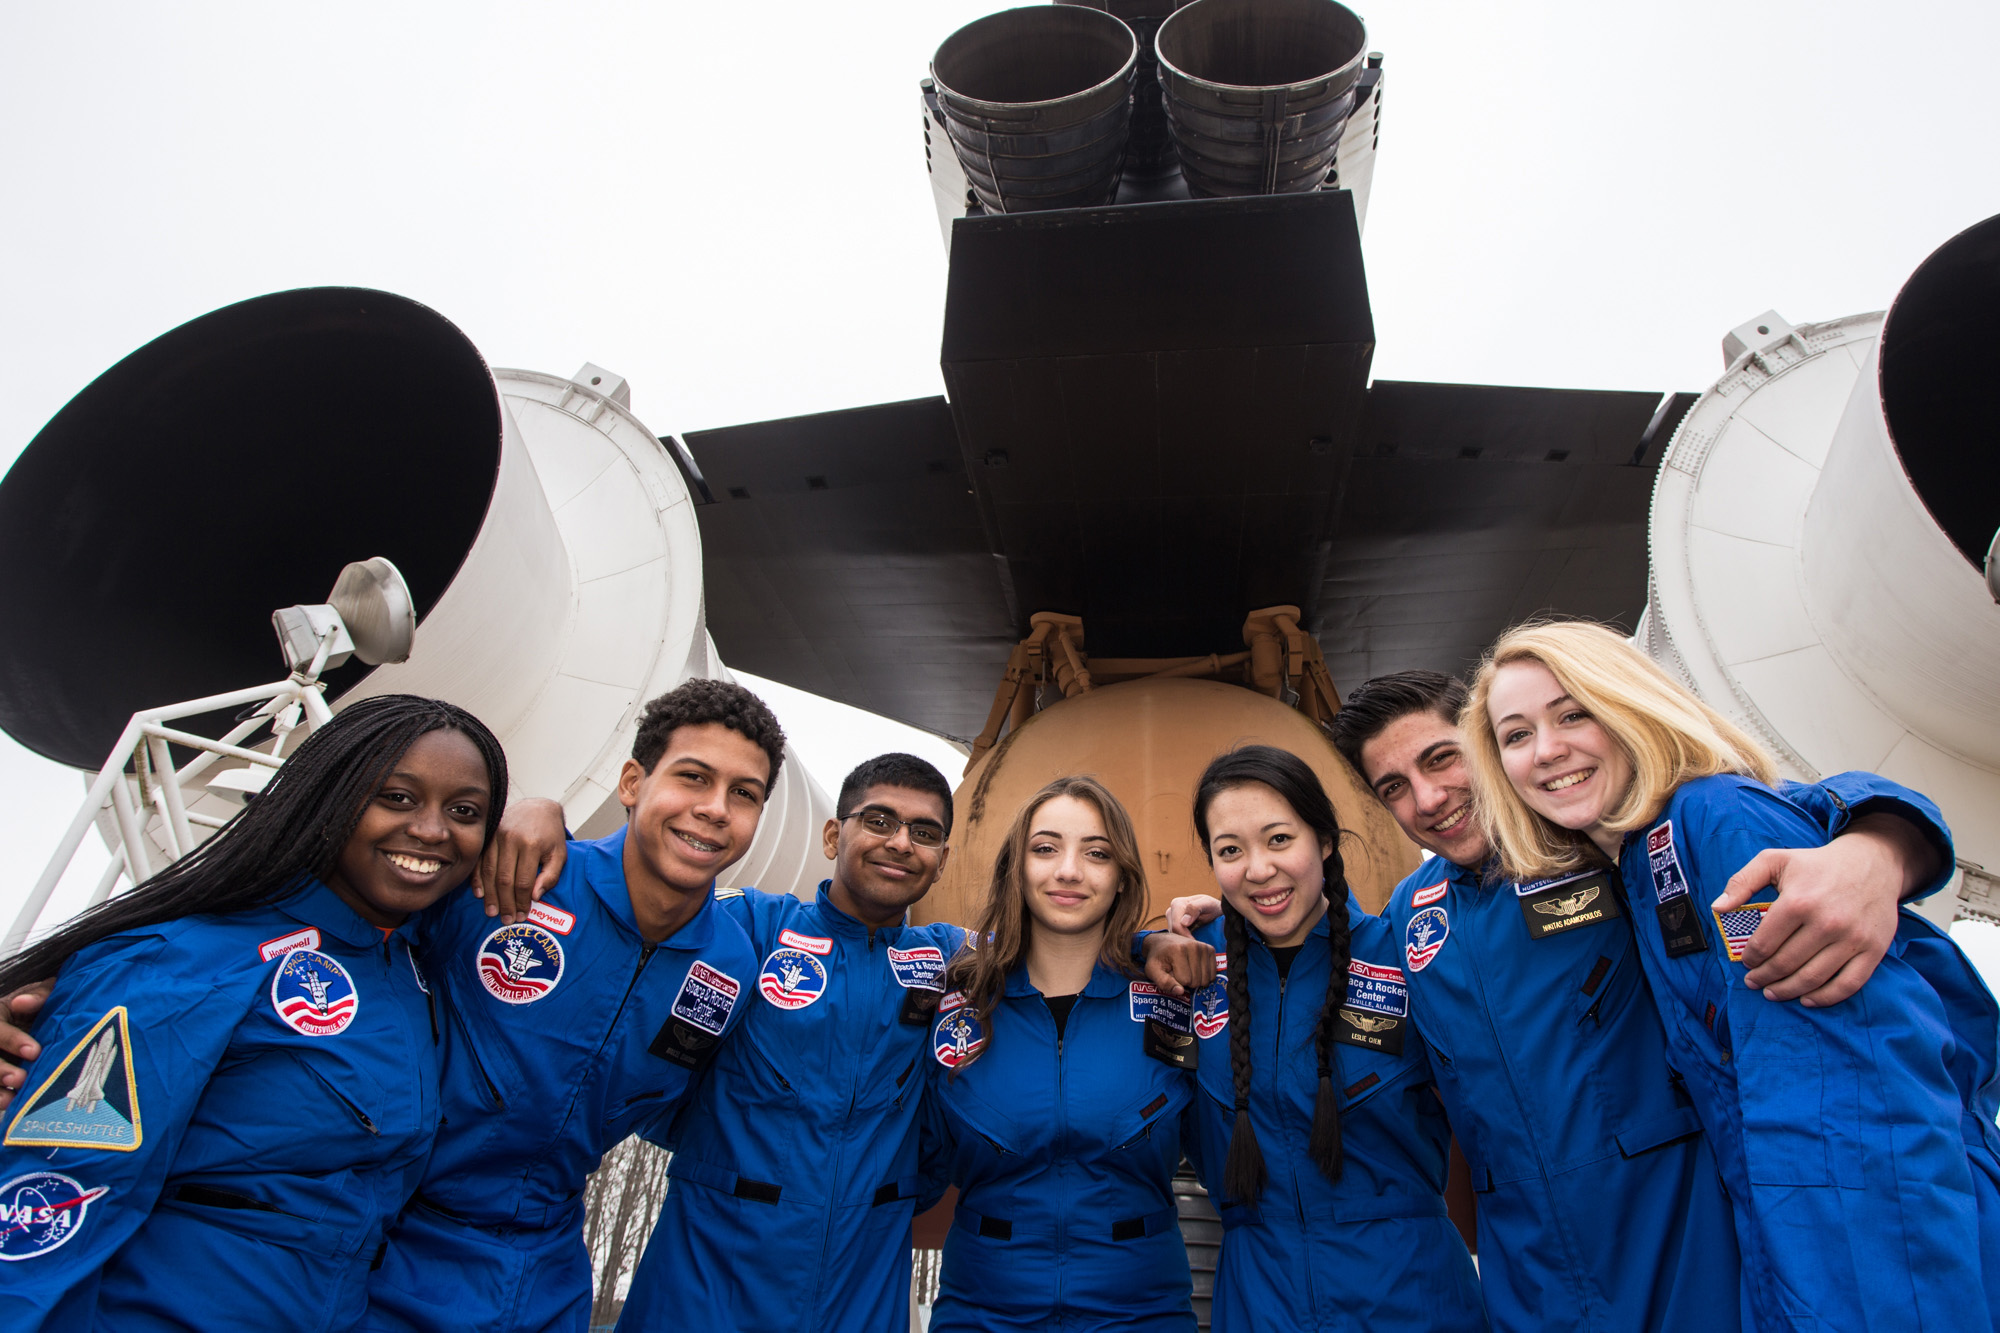 Honeywell Leadership Challenge Academy is a weeklong program that runs once a year, and is open to all students, ages 16-18, of current full-time Honeywell employees.